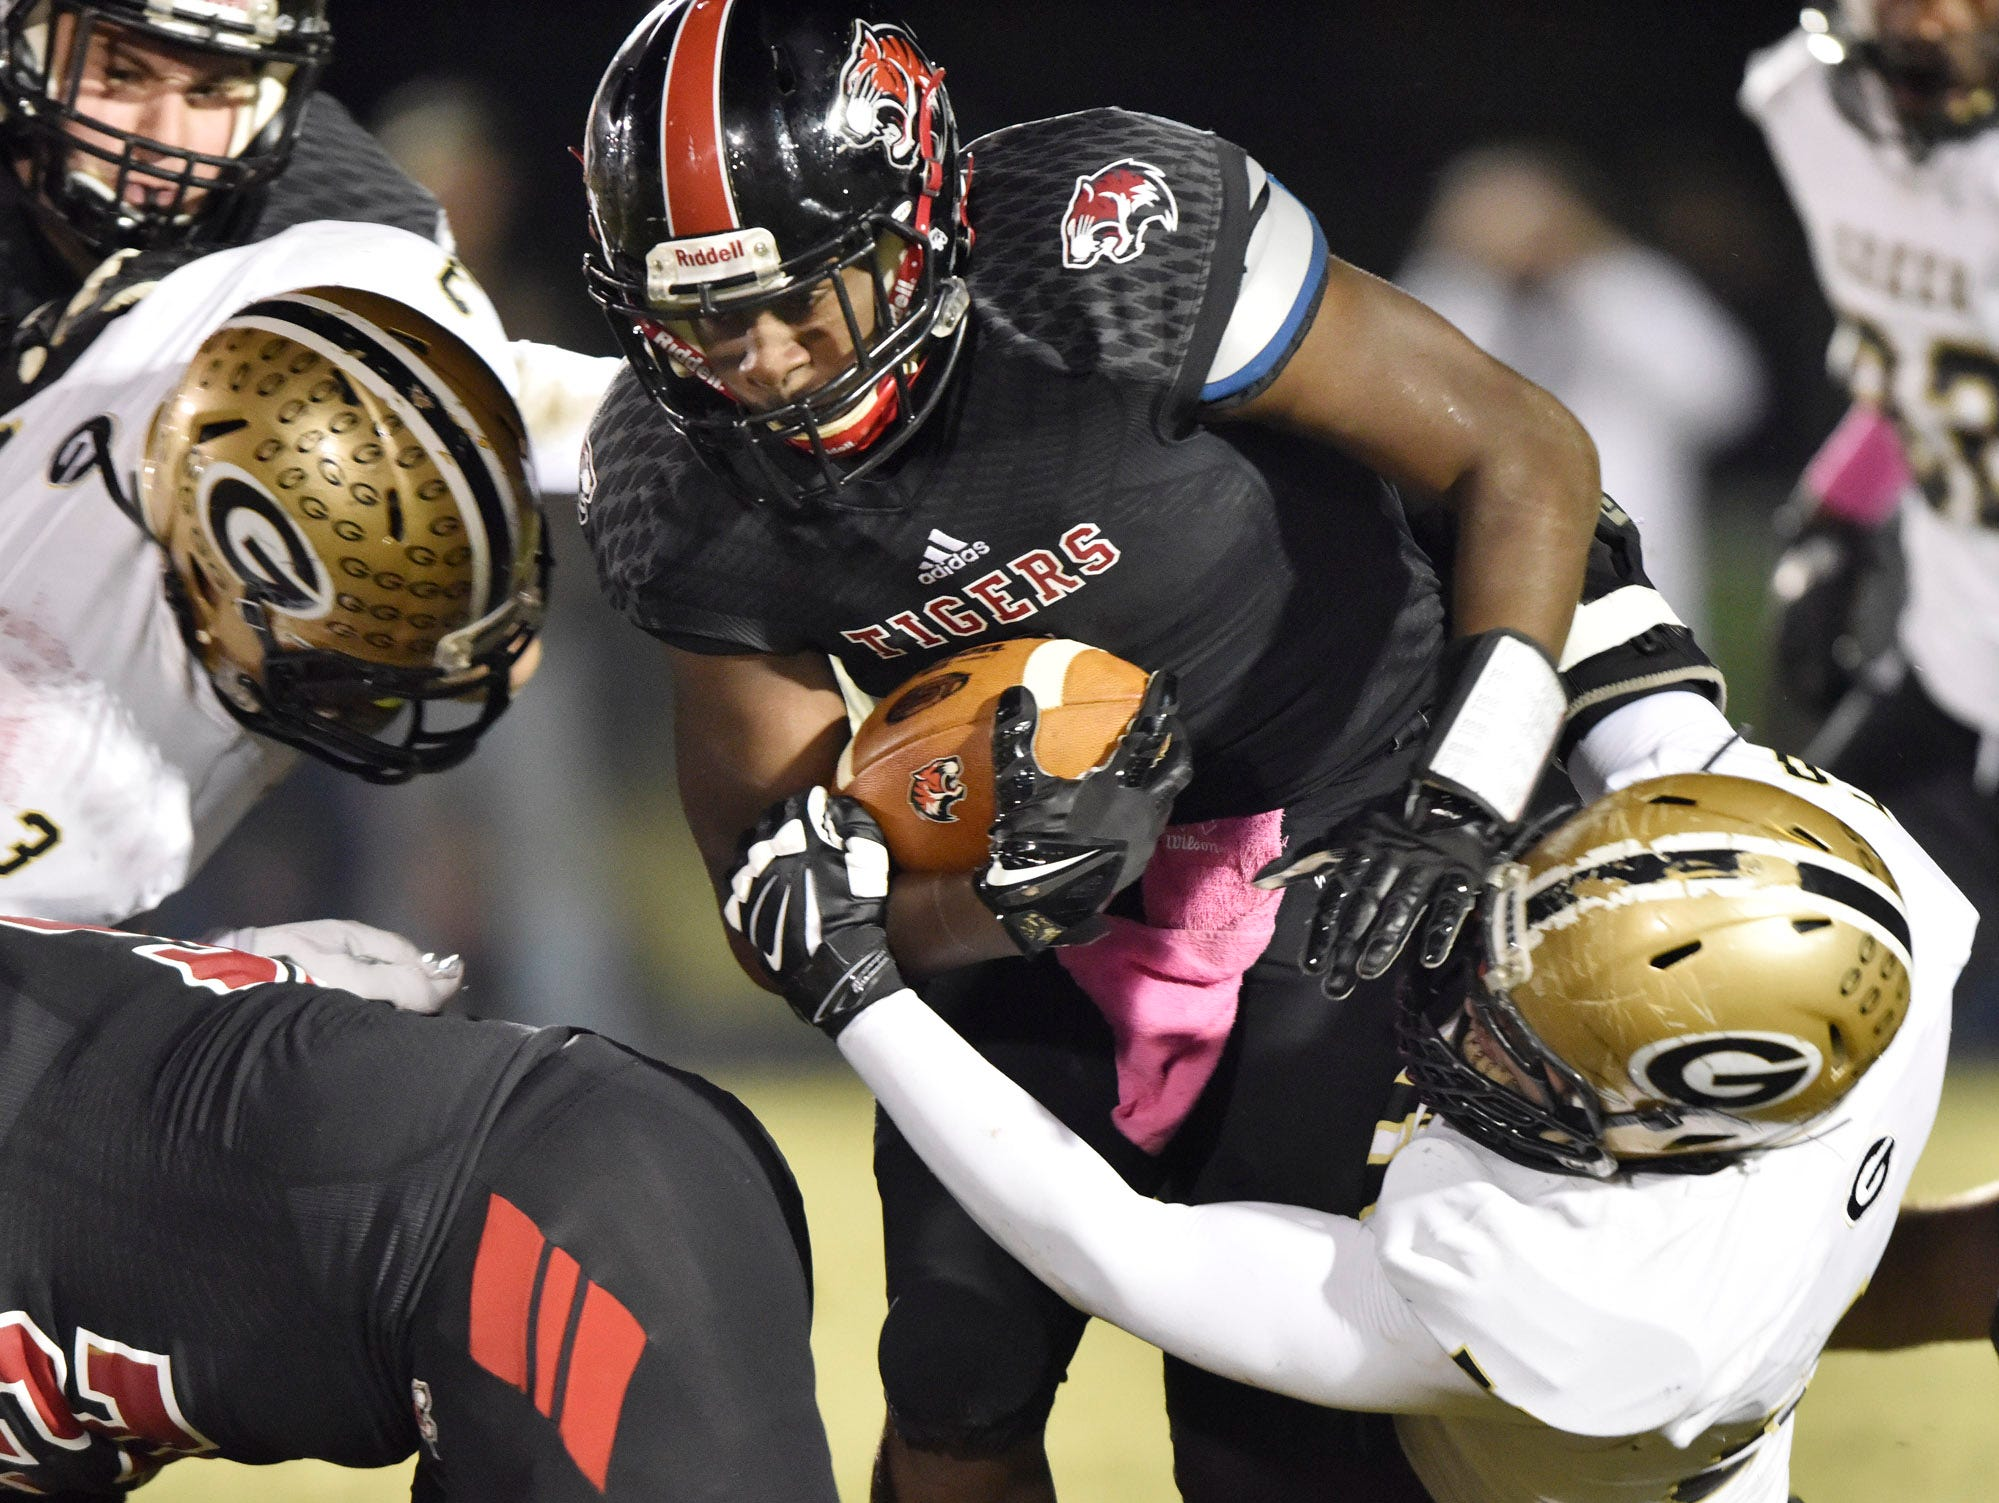 Blue Ridge's Vonta Jenkins (1) is caught by Greer's Quantavious Cohen (3) and Korey Styles (58).